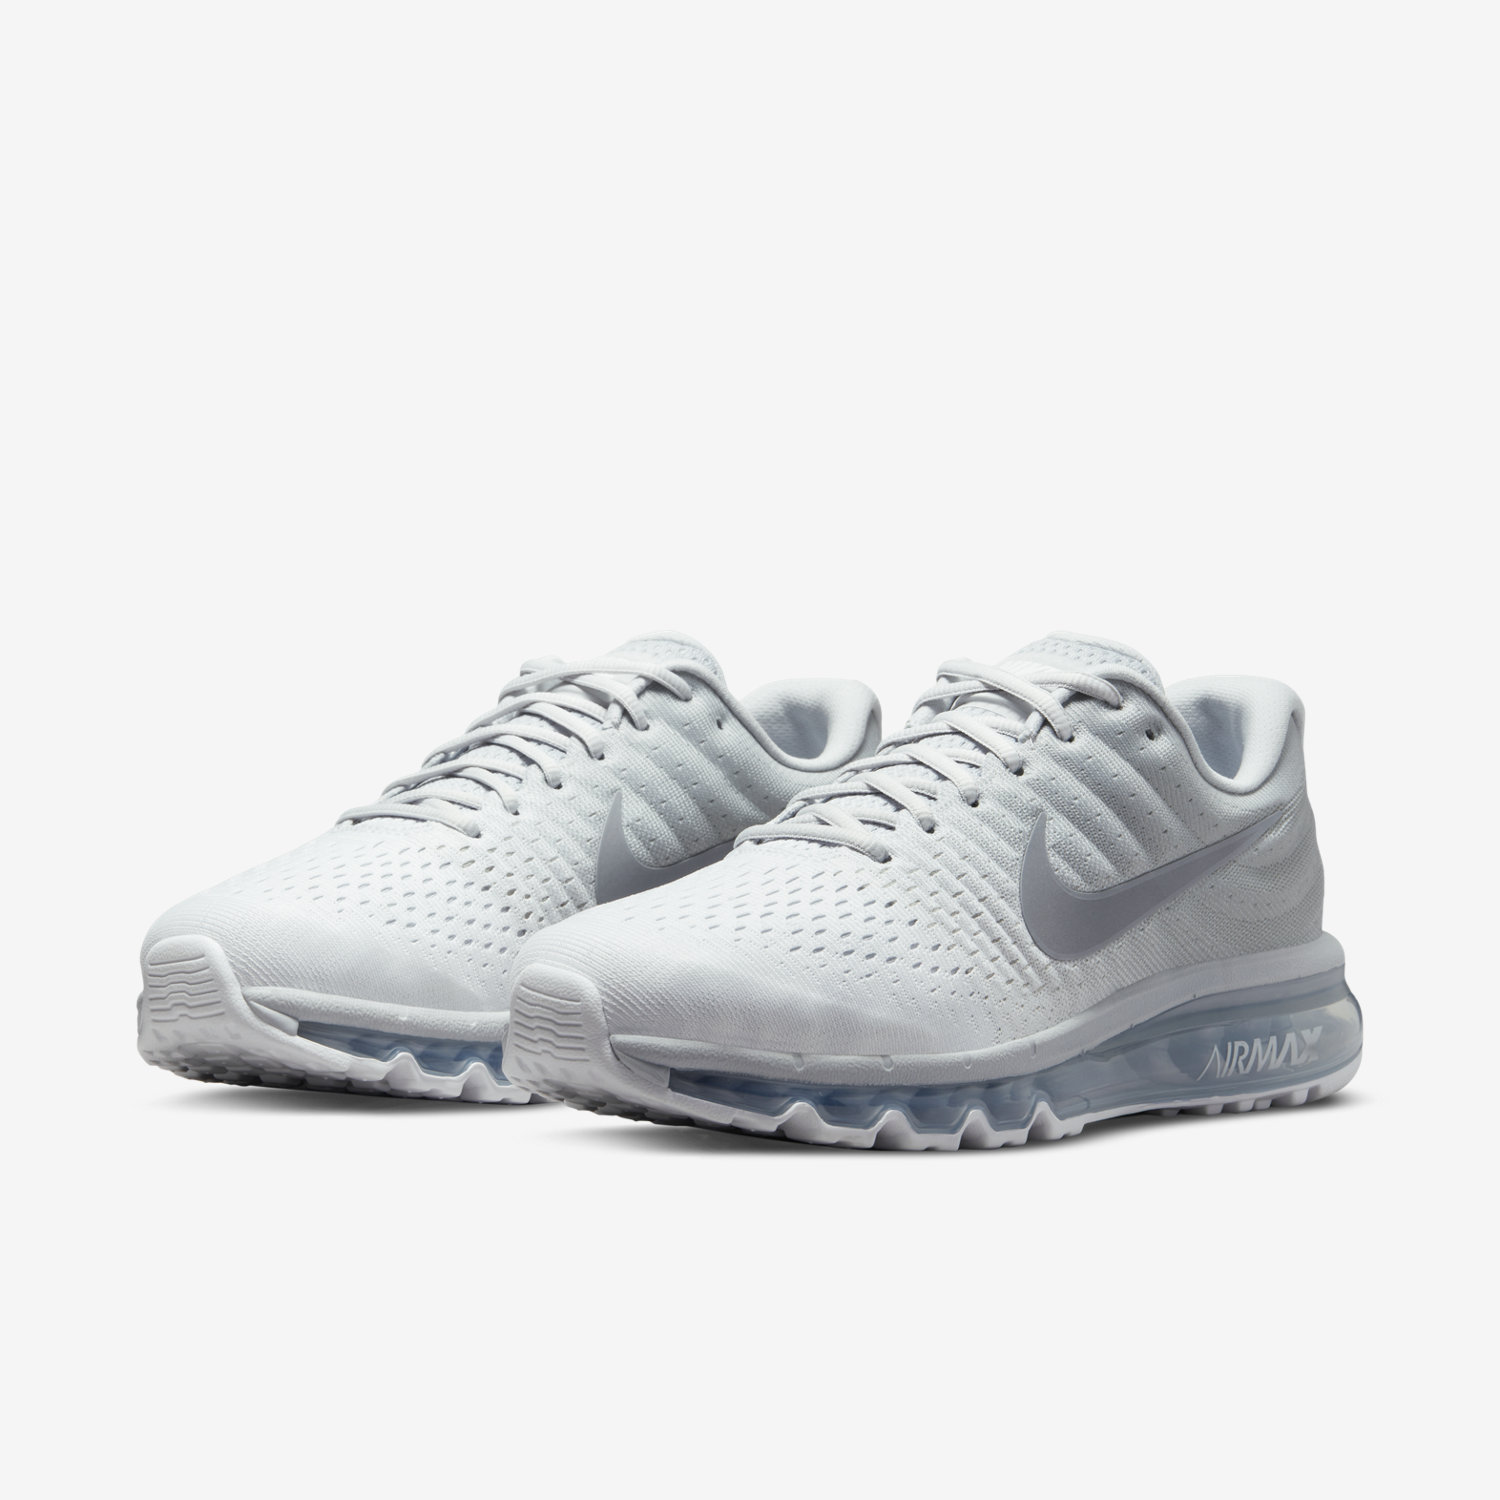 Nike WMNS NIKE AIR MAX 2017 Running Shoes Buy BLACK